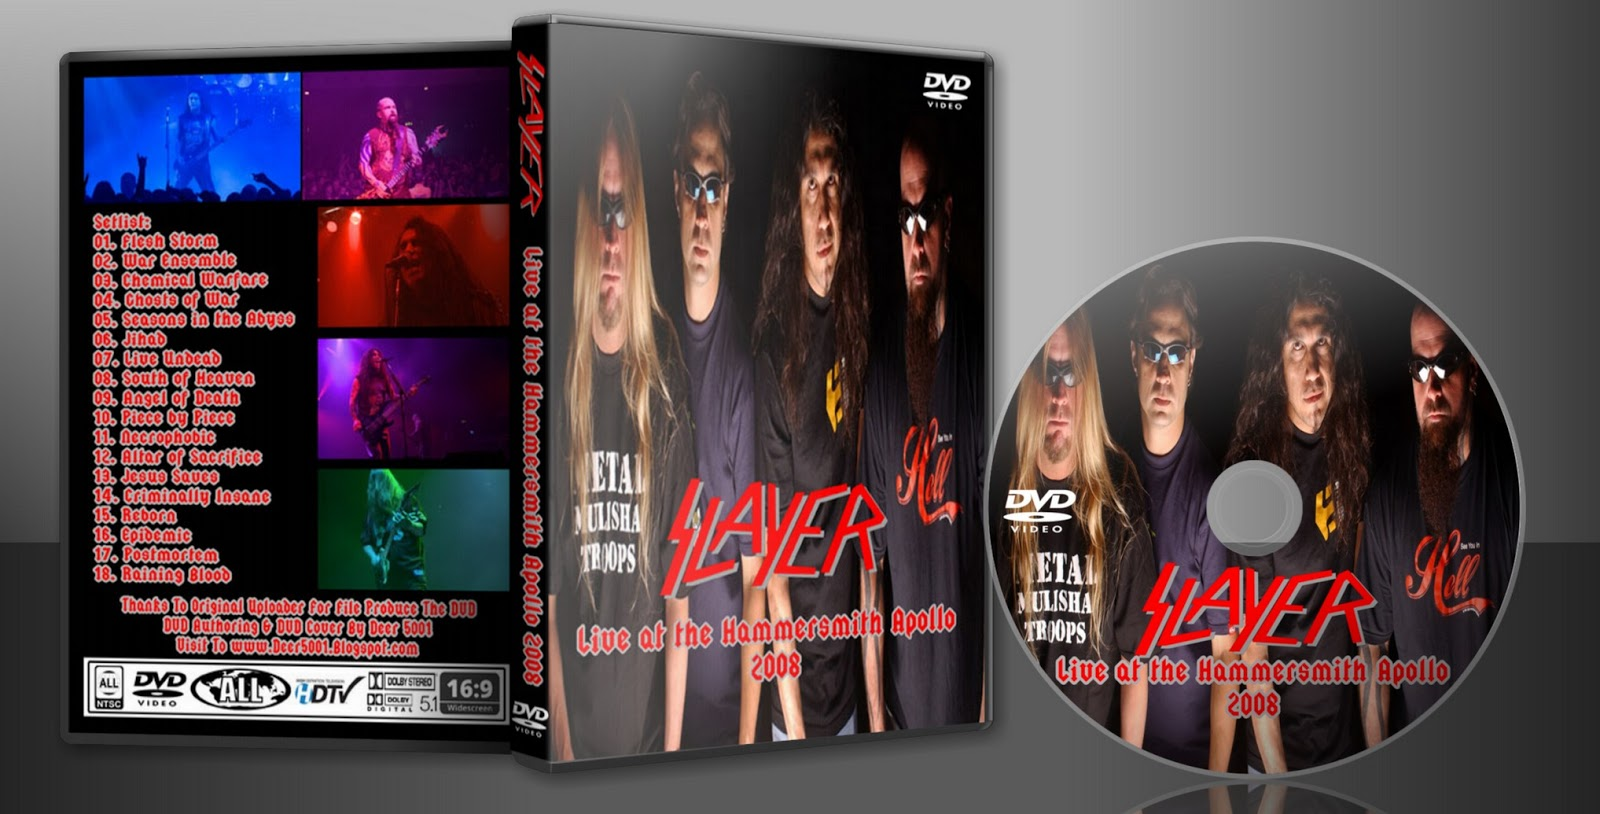 784f51d4683 Deer5001RockCocert : Slayer - 2008 - Live at the Hammersmith Apollo